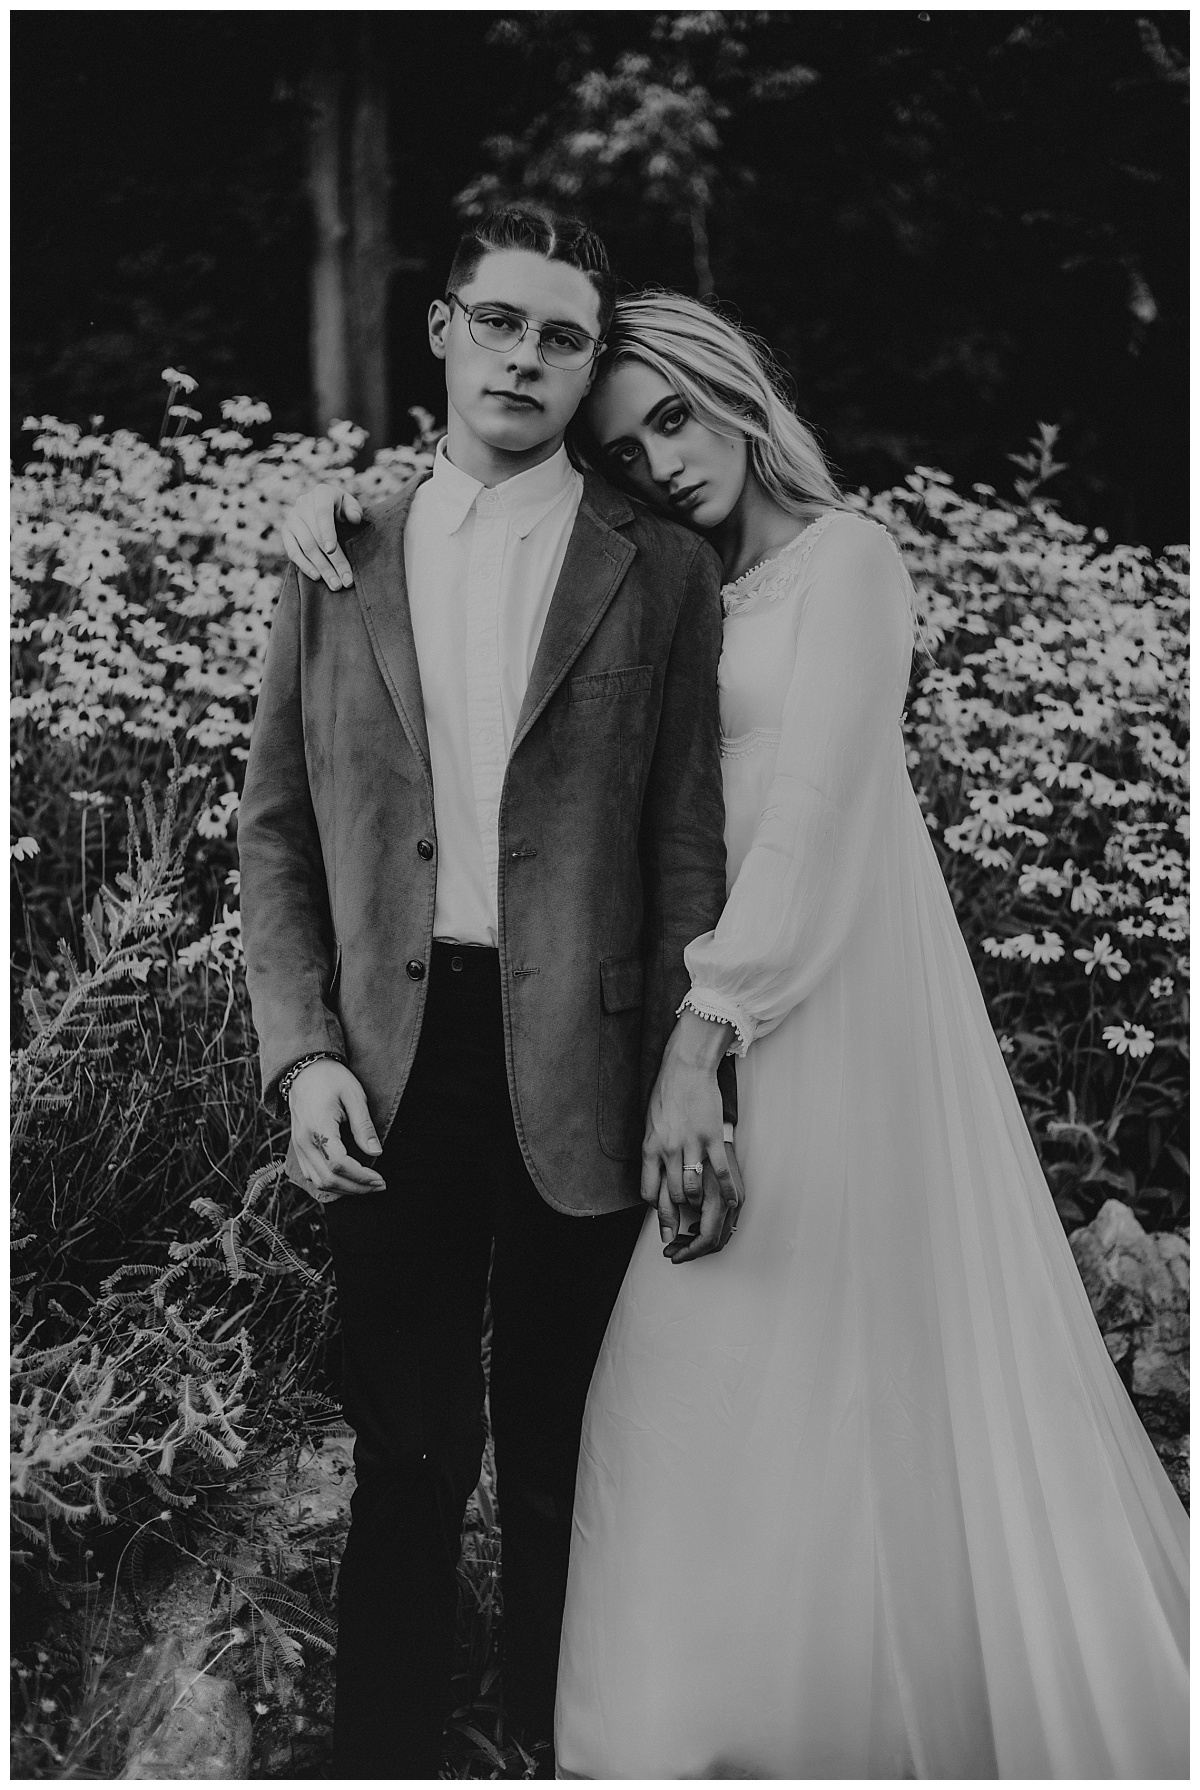 2019-07-08_0012.jpgKansas City Elopement | Vintage Wedding | Moody Wedding | Colorado Elopement | Kansas City Wedding